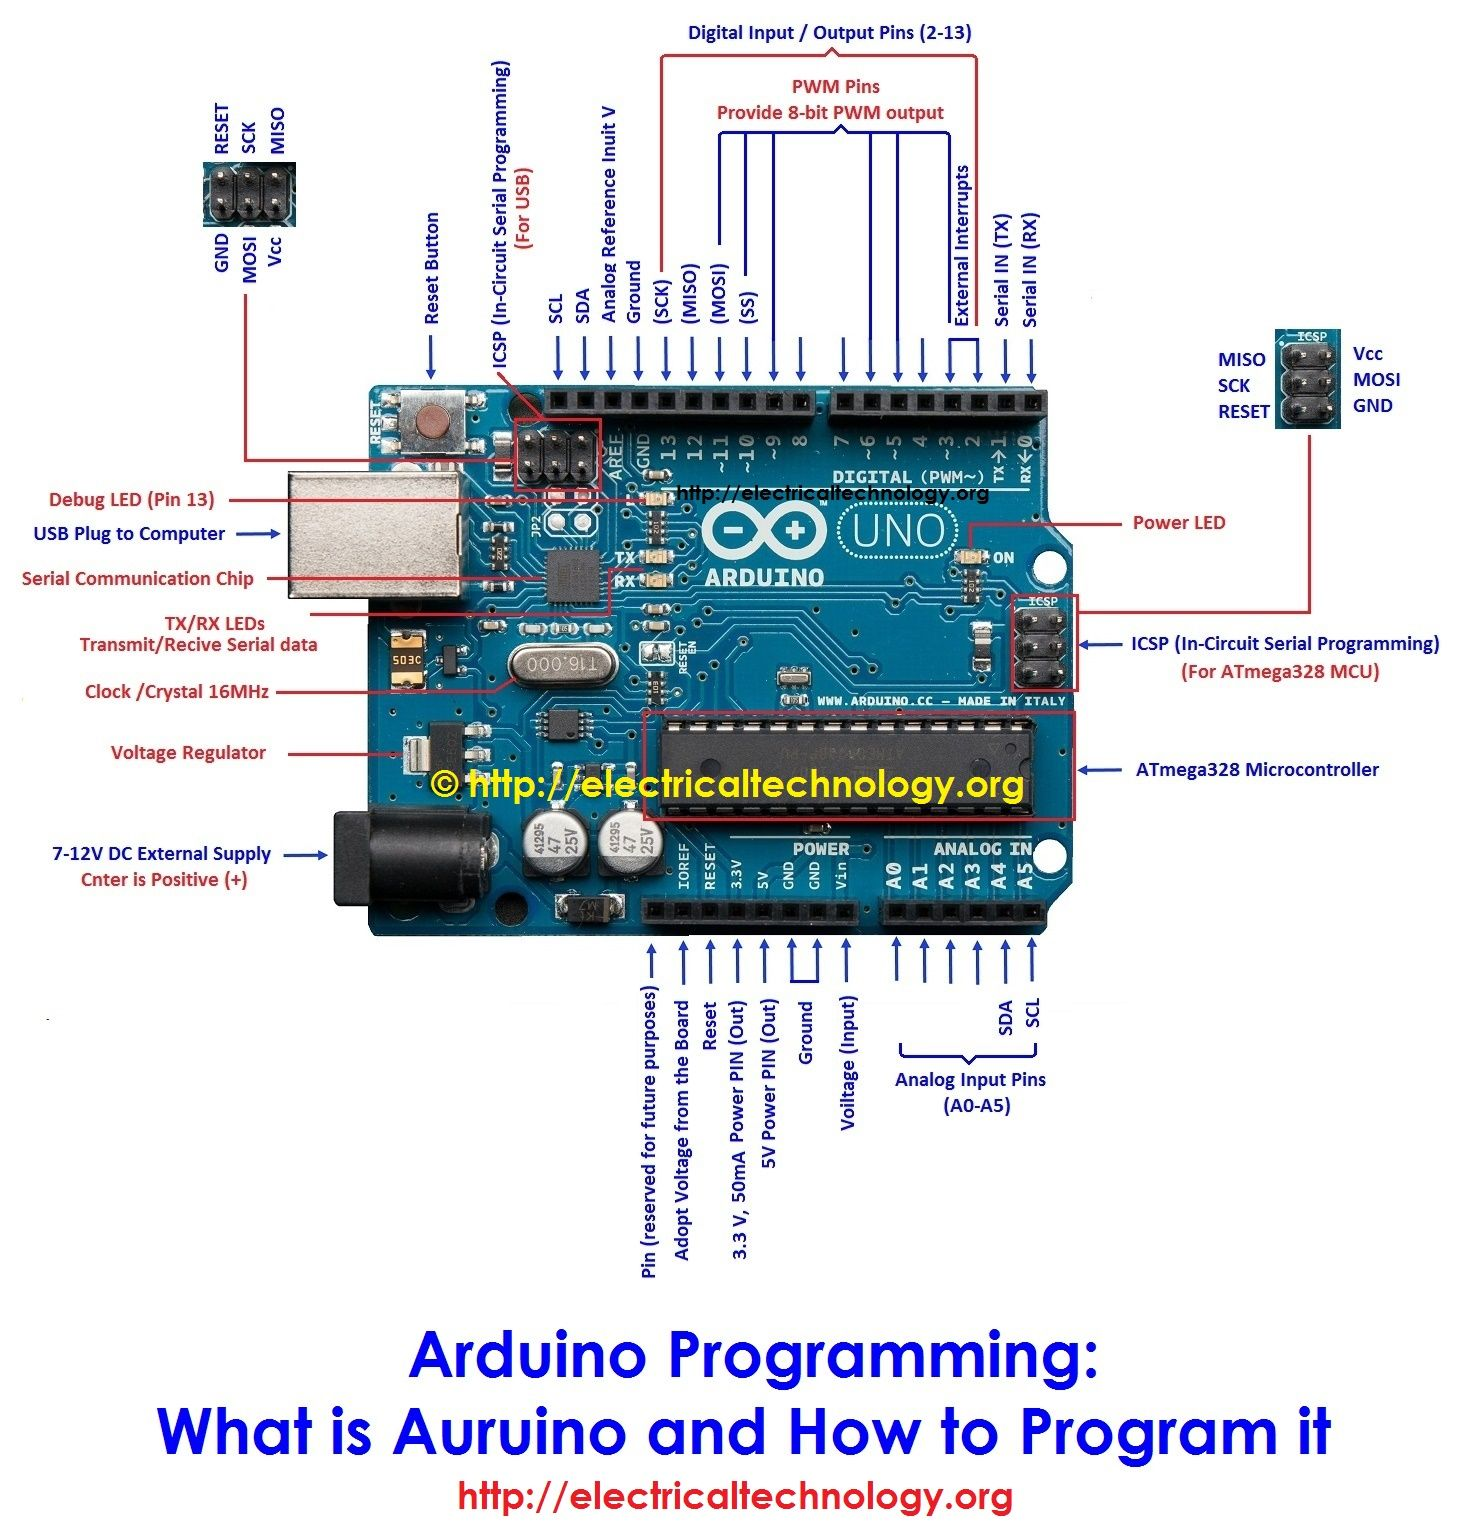 medium resolution of arduino programming what is auruino and how to program it arduino uno pin components labels